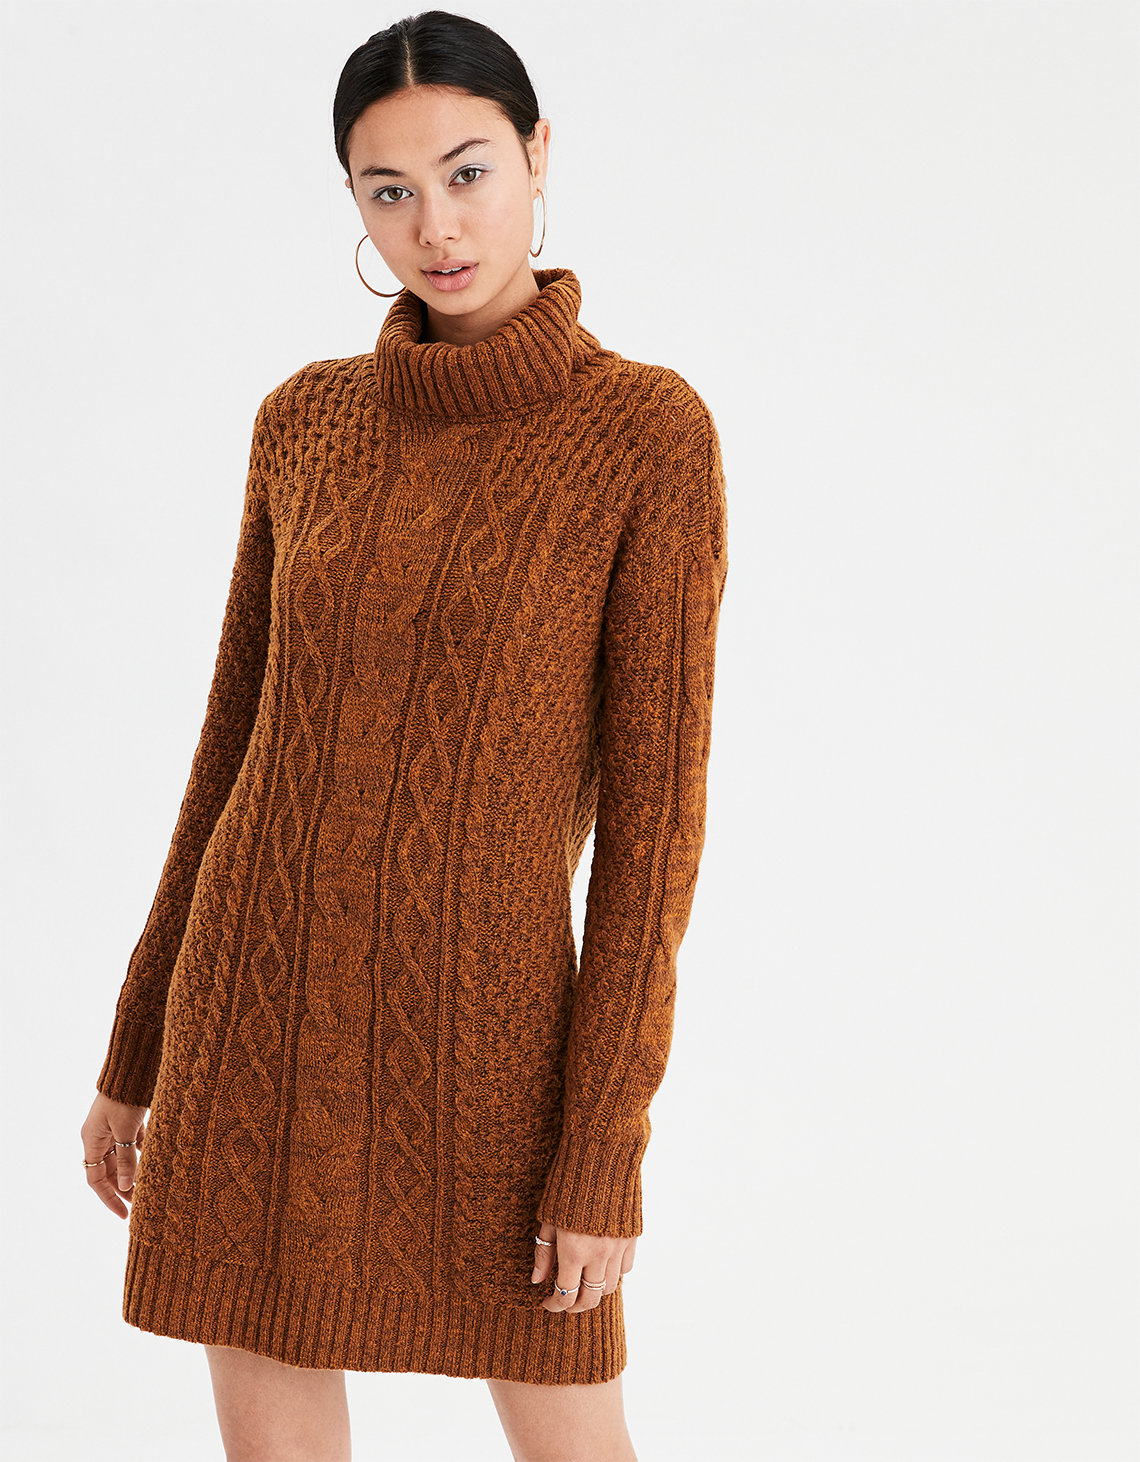 f5bae7b544a7 AE Turtleneck Cable Knit Sweater Dress. Placeholder image. Product Image